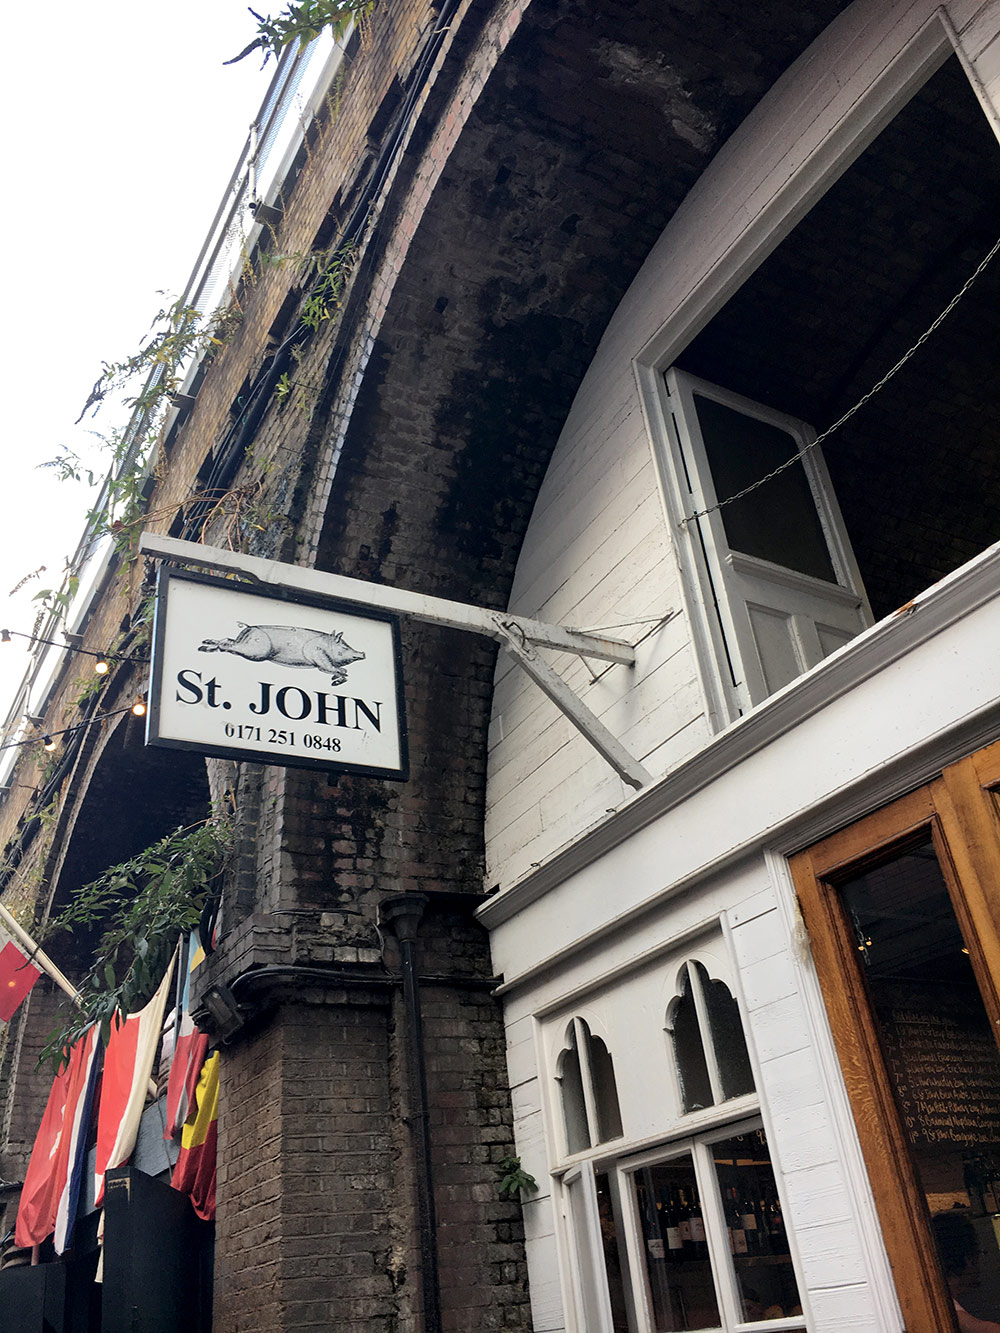 There's even a branch of St. John's tucked under one of the arches, if you fancy having a sit down at table, their doughnuts look amazing also, the best Bacon Sandwich in London!